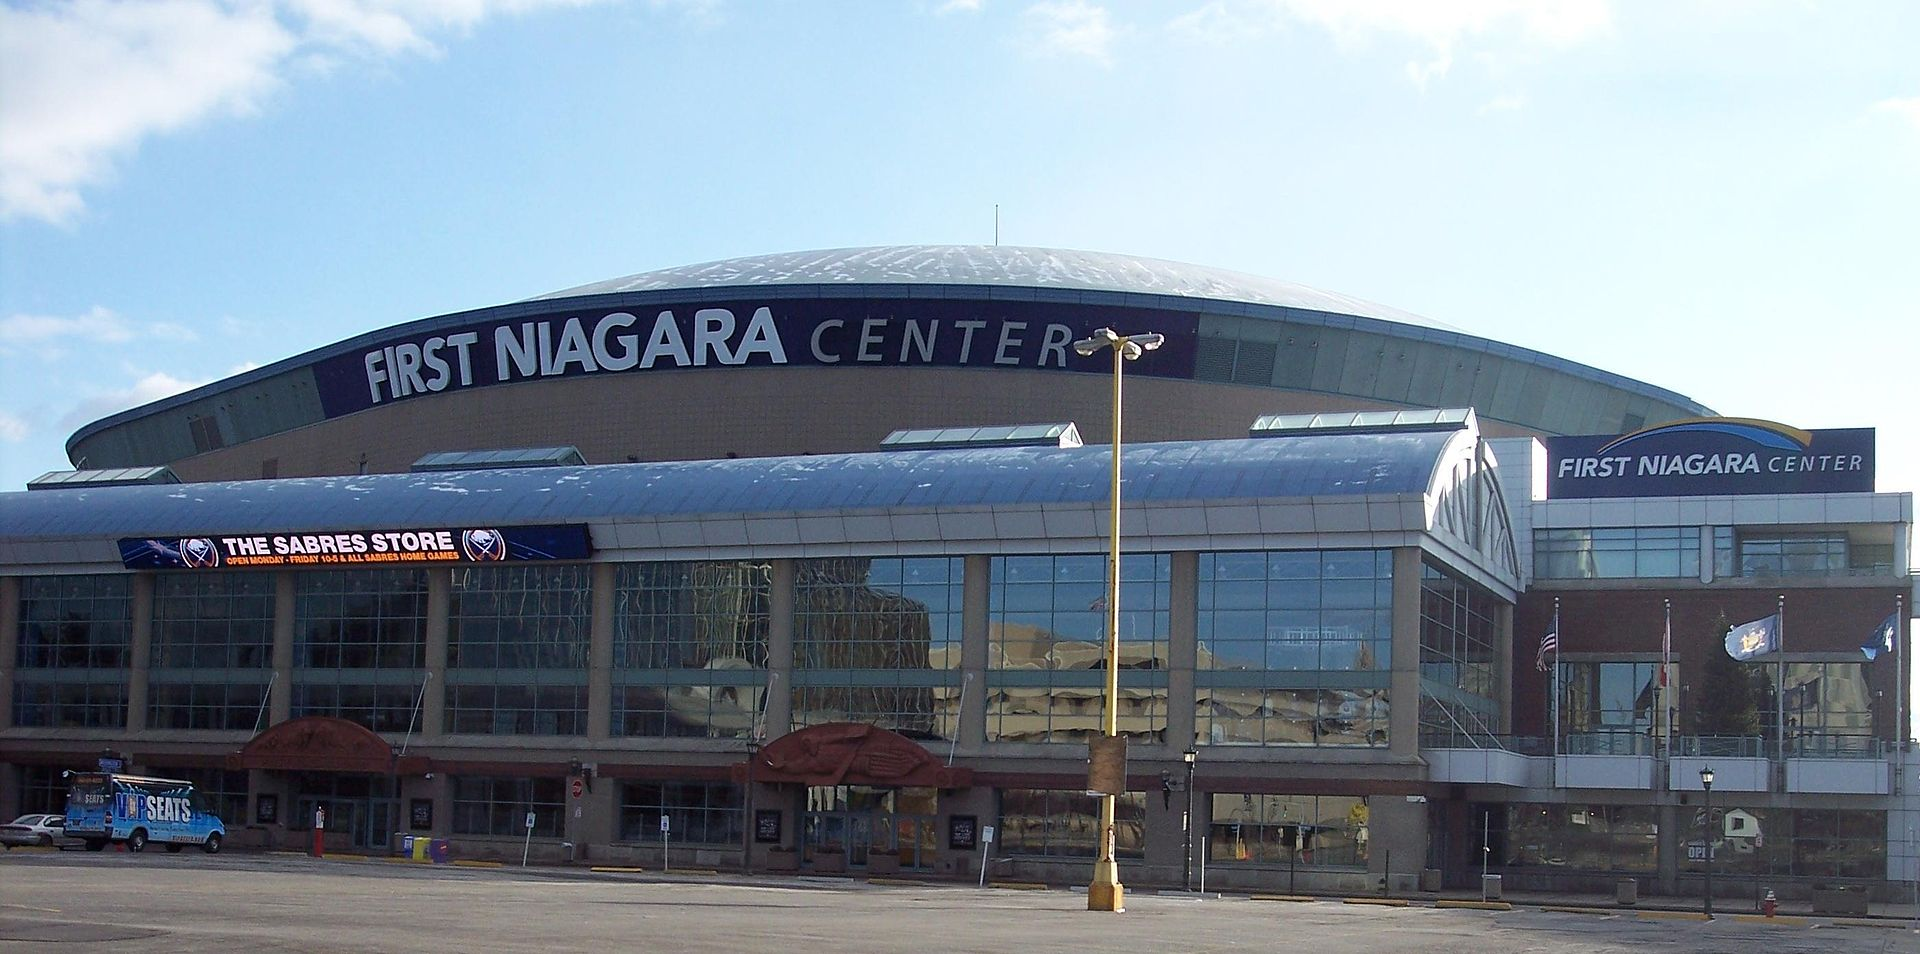 1920px-First_Niagara_Center_front.jpg